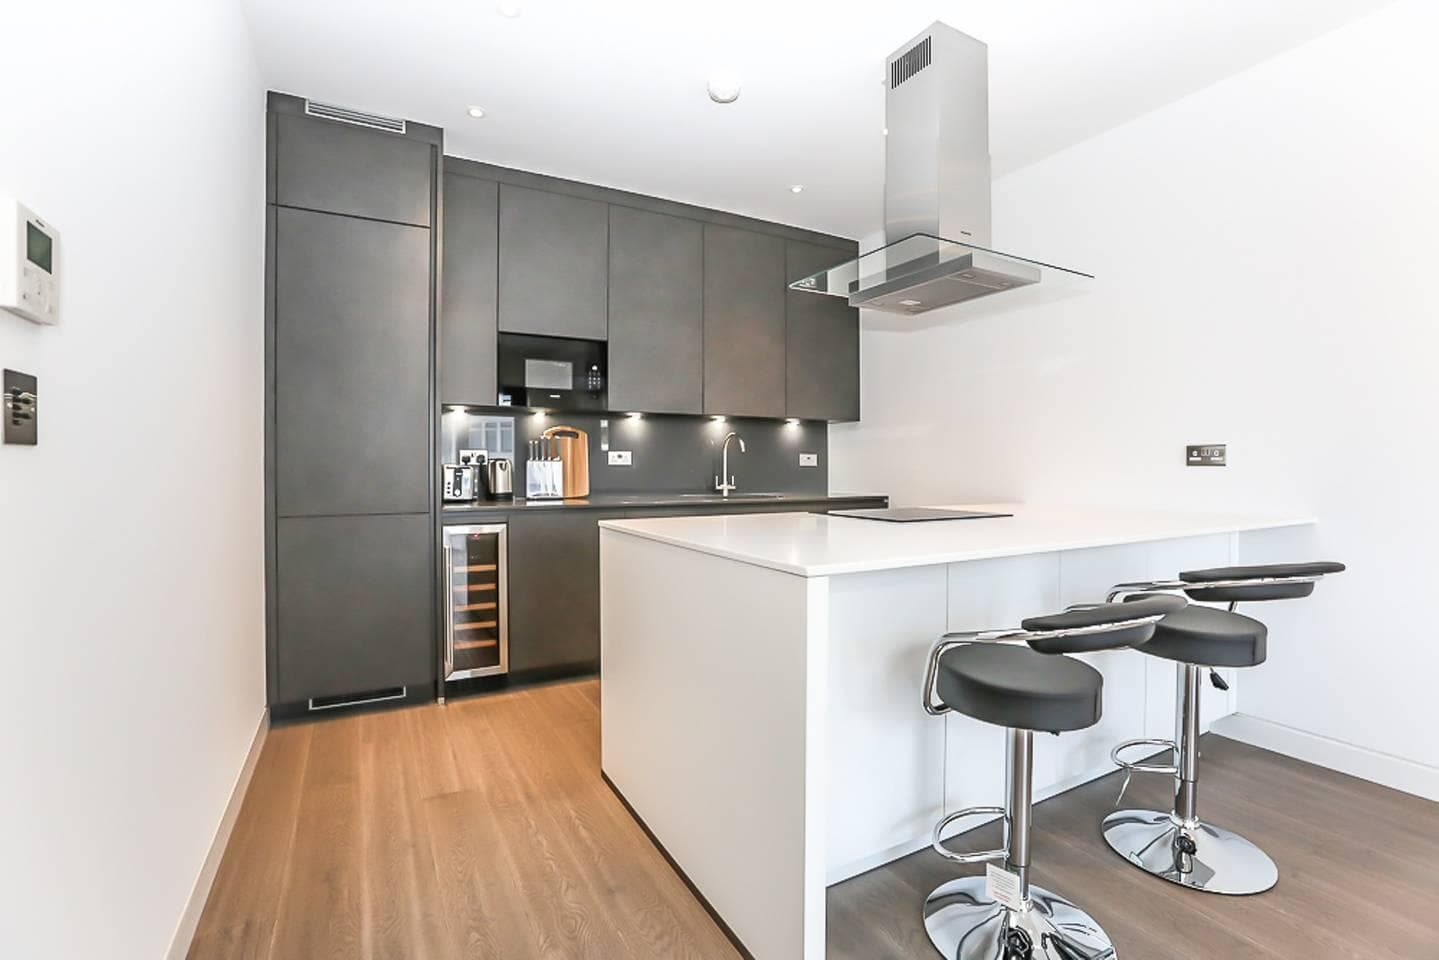 Property Image 2 - Luxurious 2 Bedroom Apartment with Balcony in Shoreditch